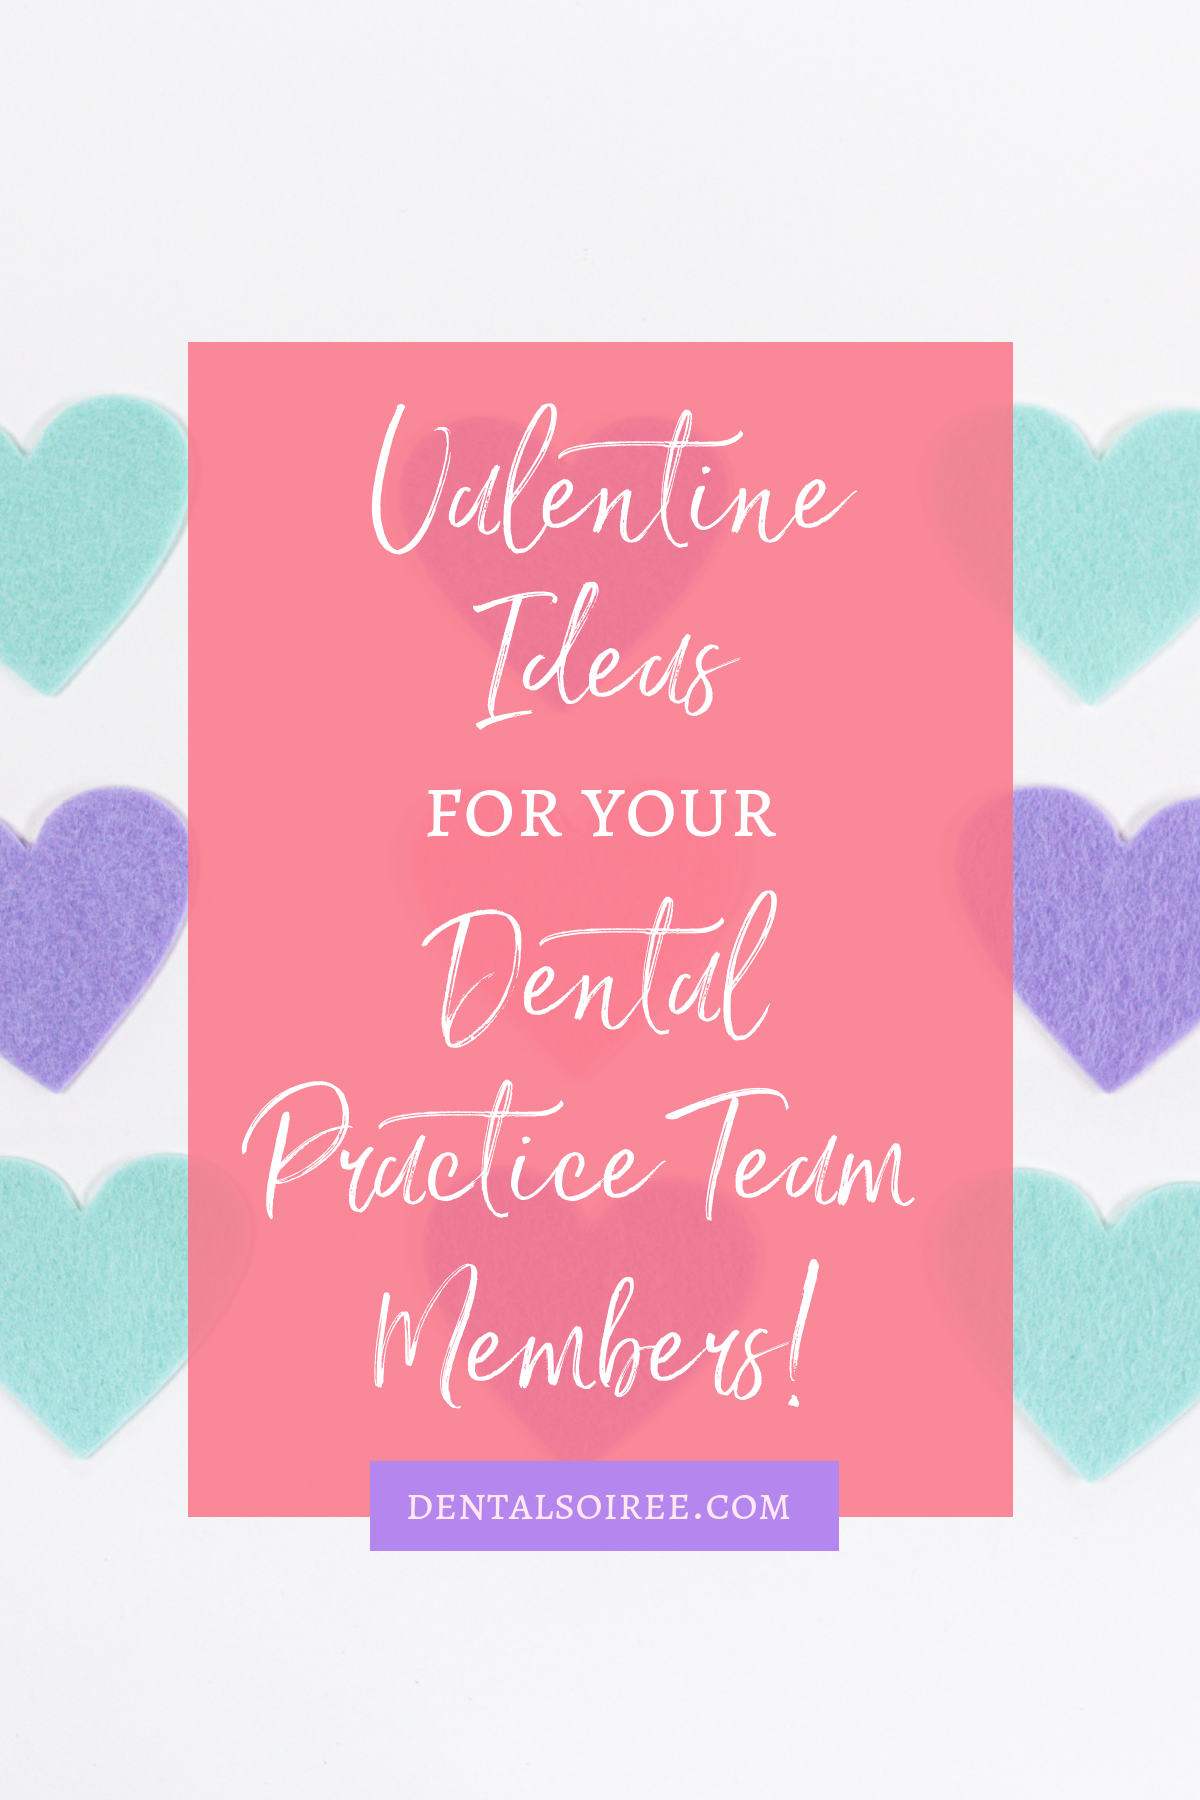 Valentine Ideas for Your Dental Practice Team Members